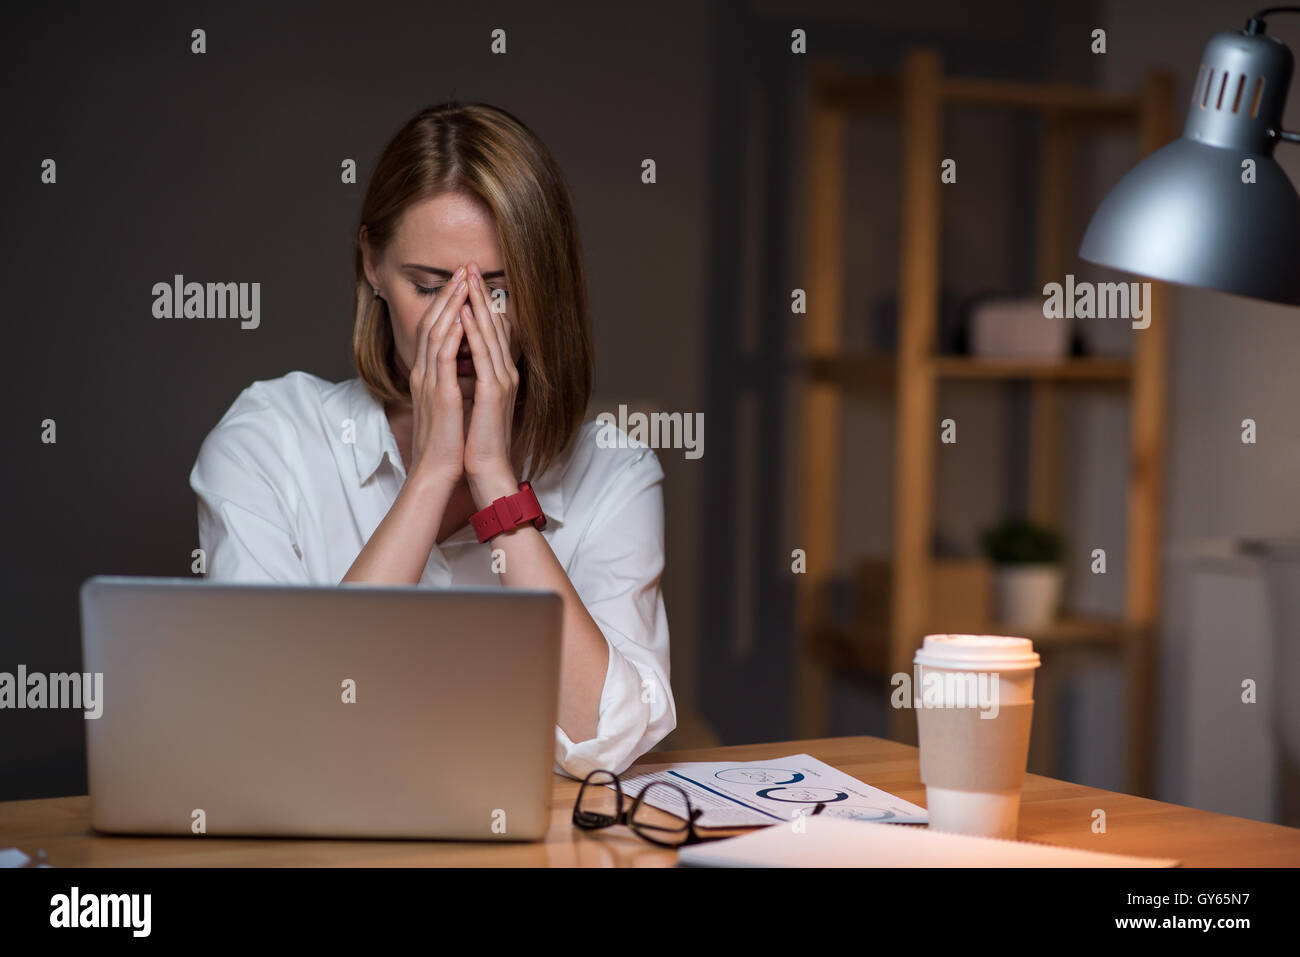 woman sitting at the table - Stock Image